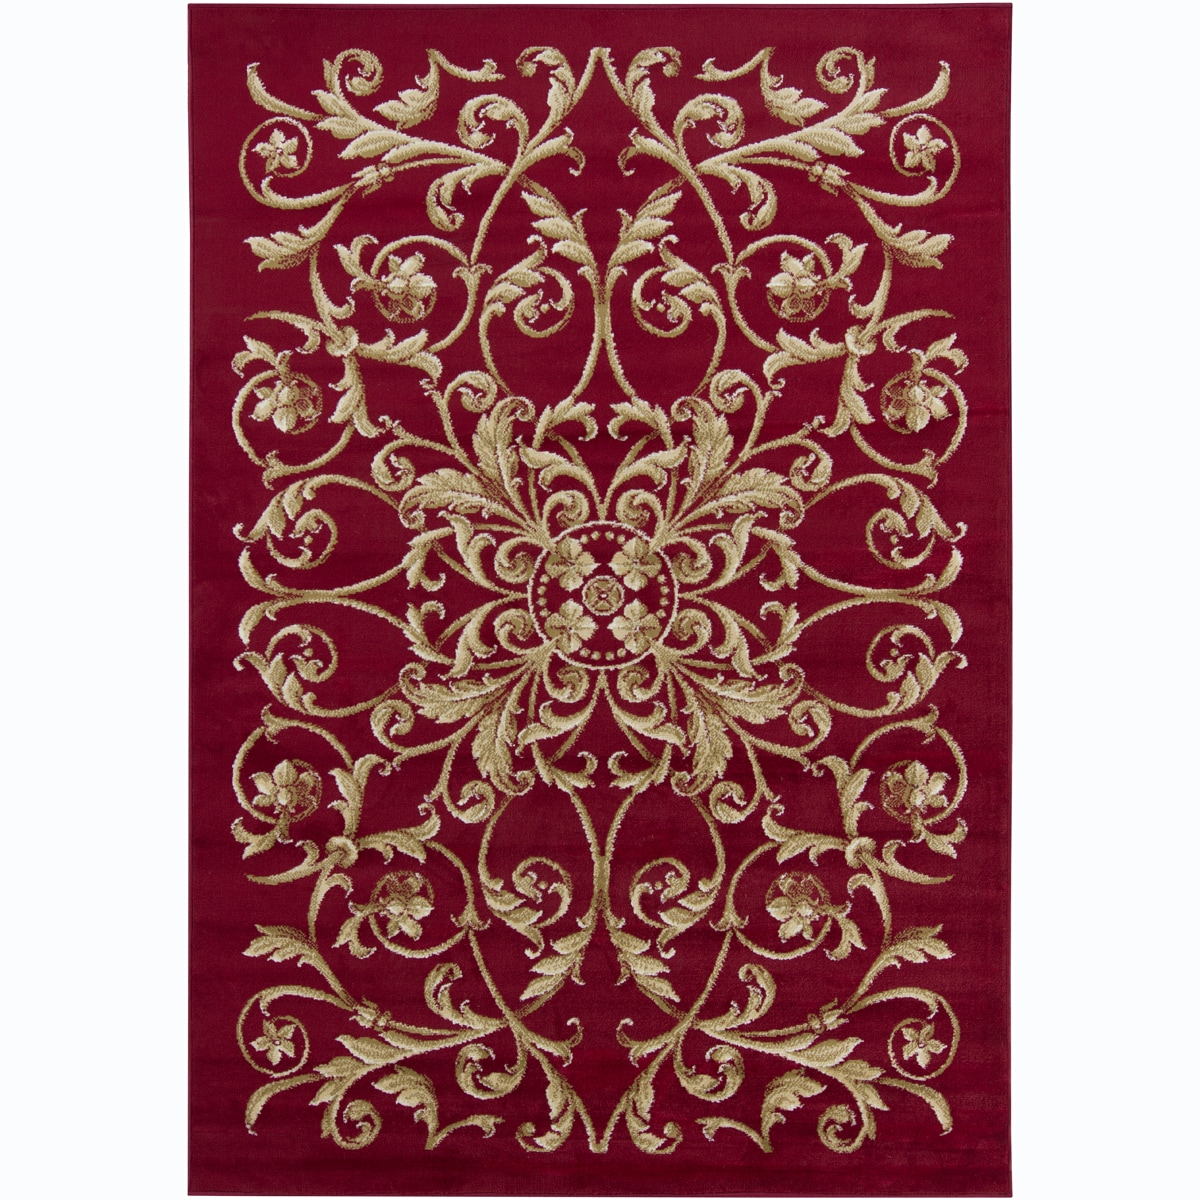 Overstock shopping great deals on mandara 3x5 4x6 rugs